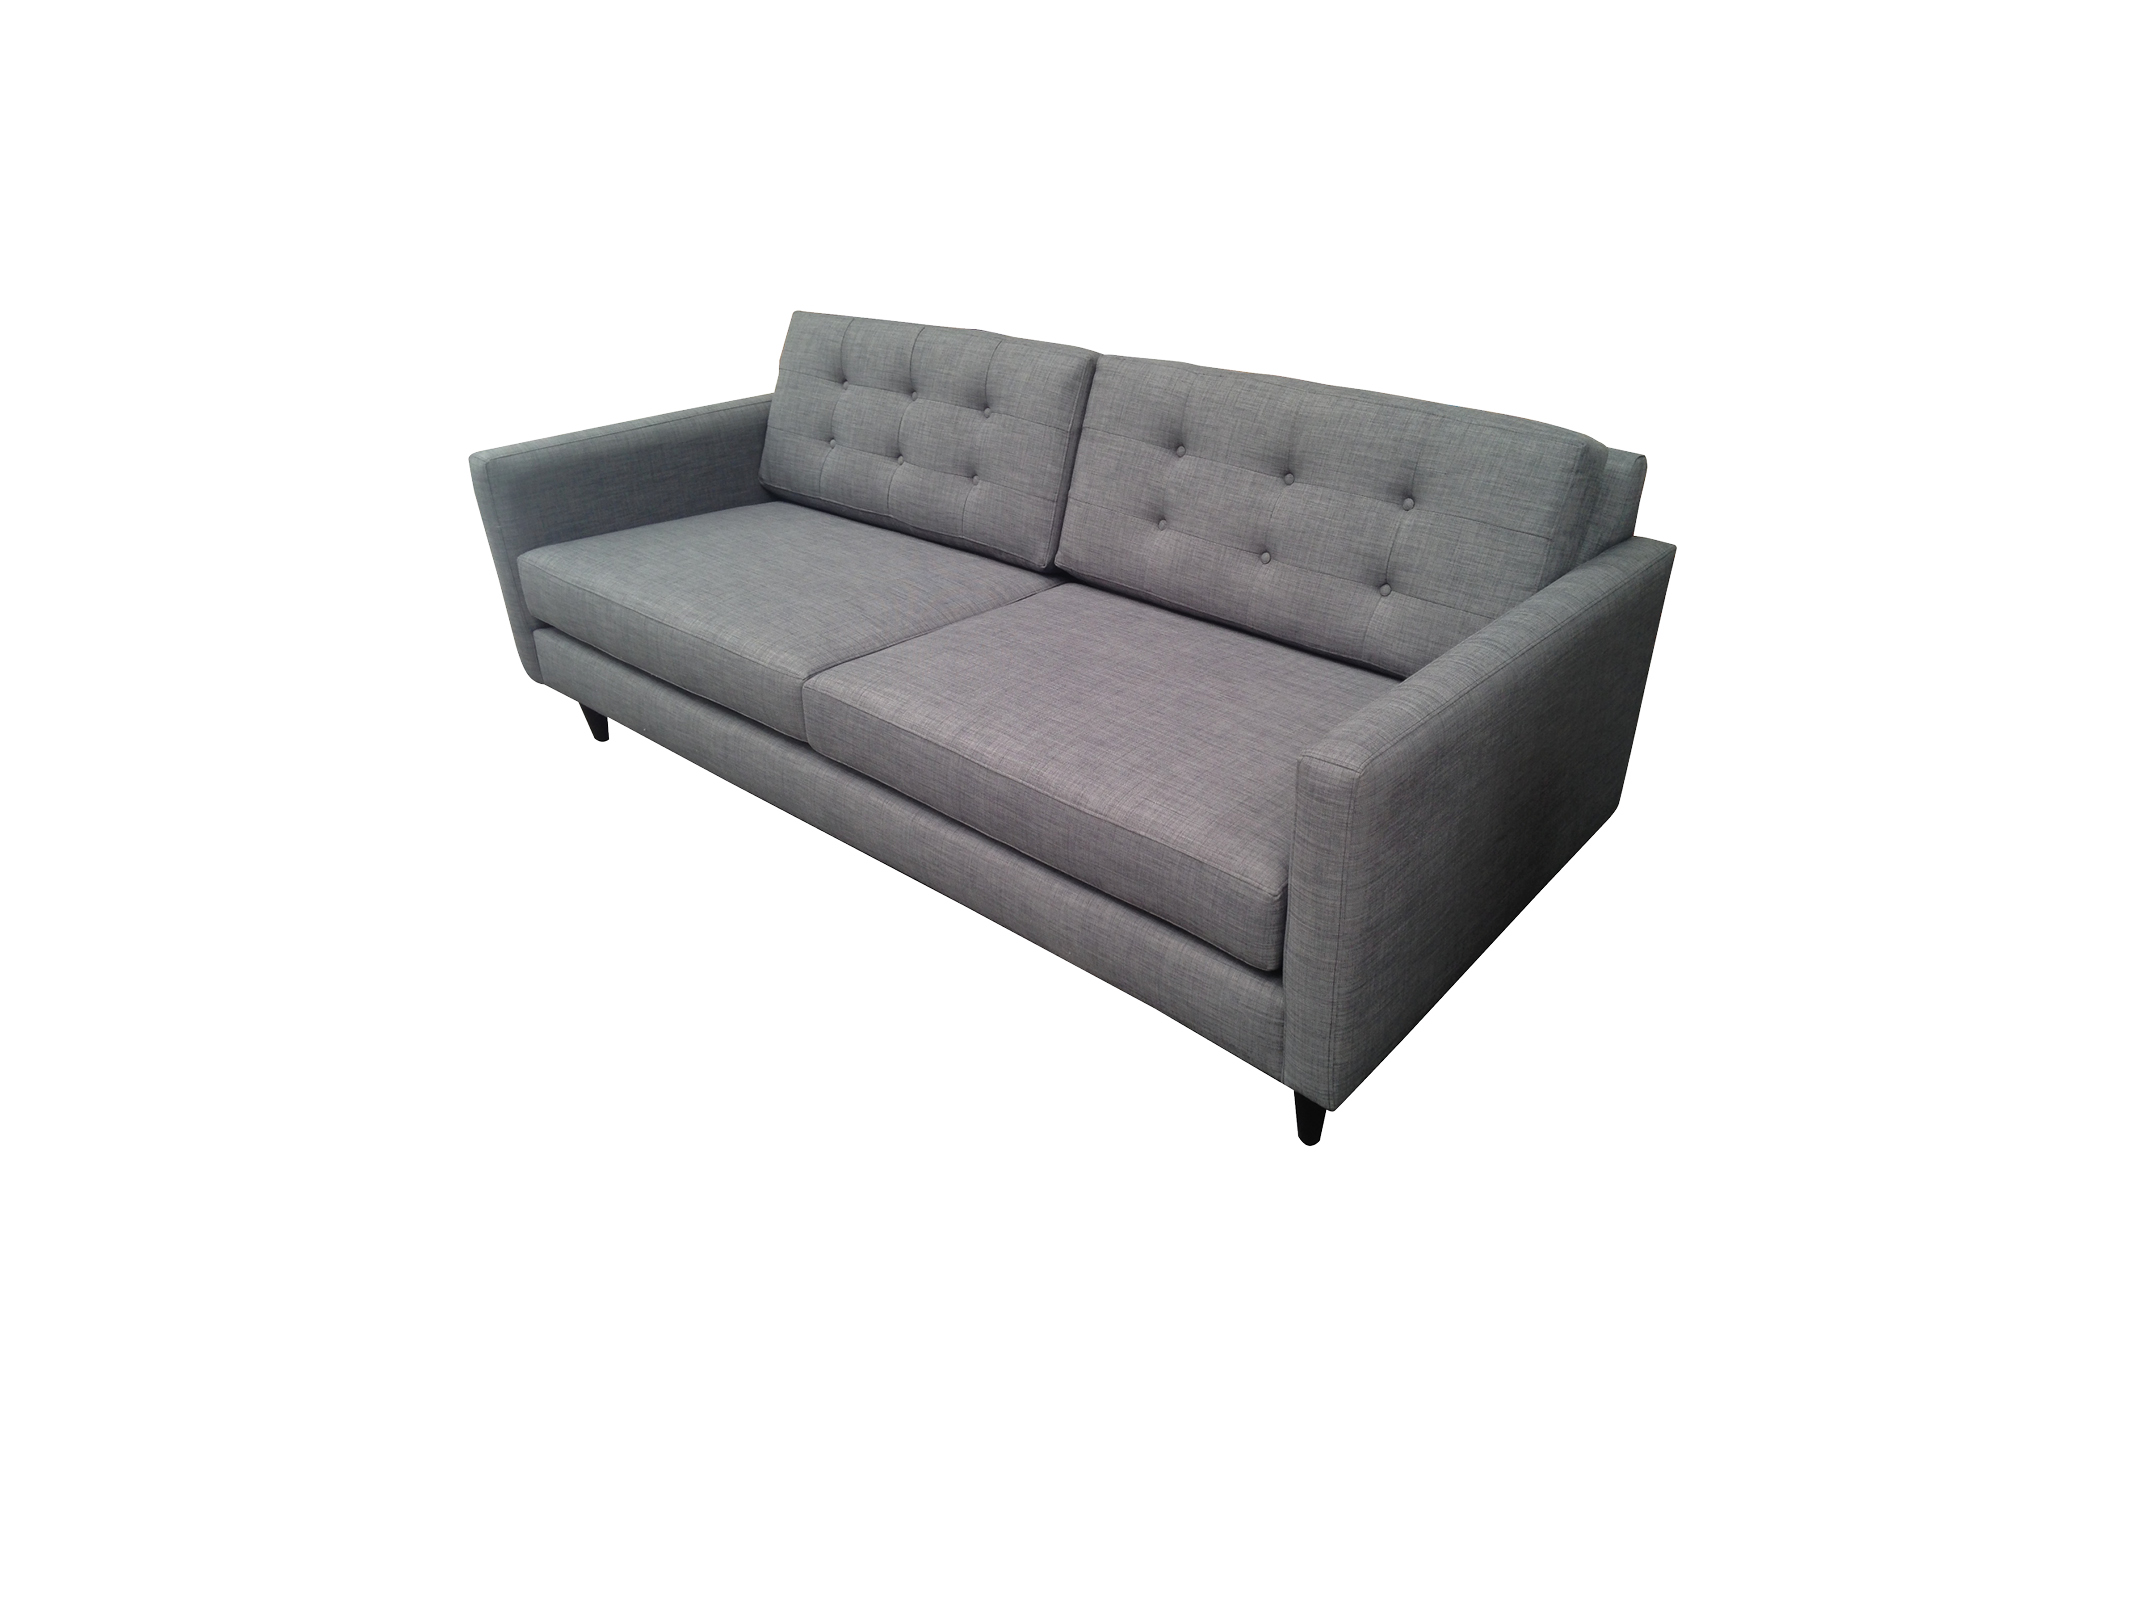 oxford_sofa_3.jpg